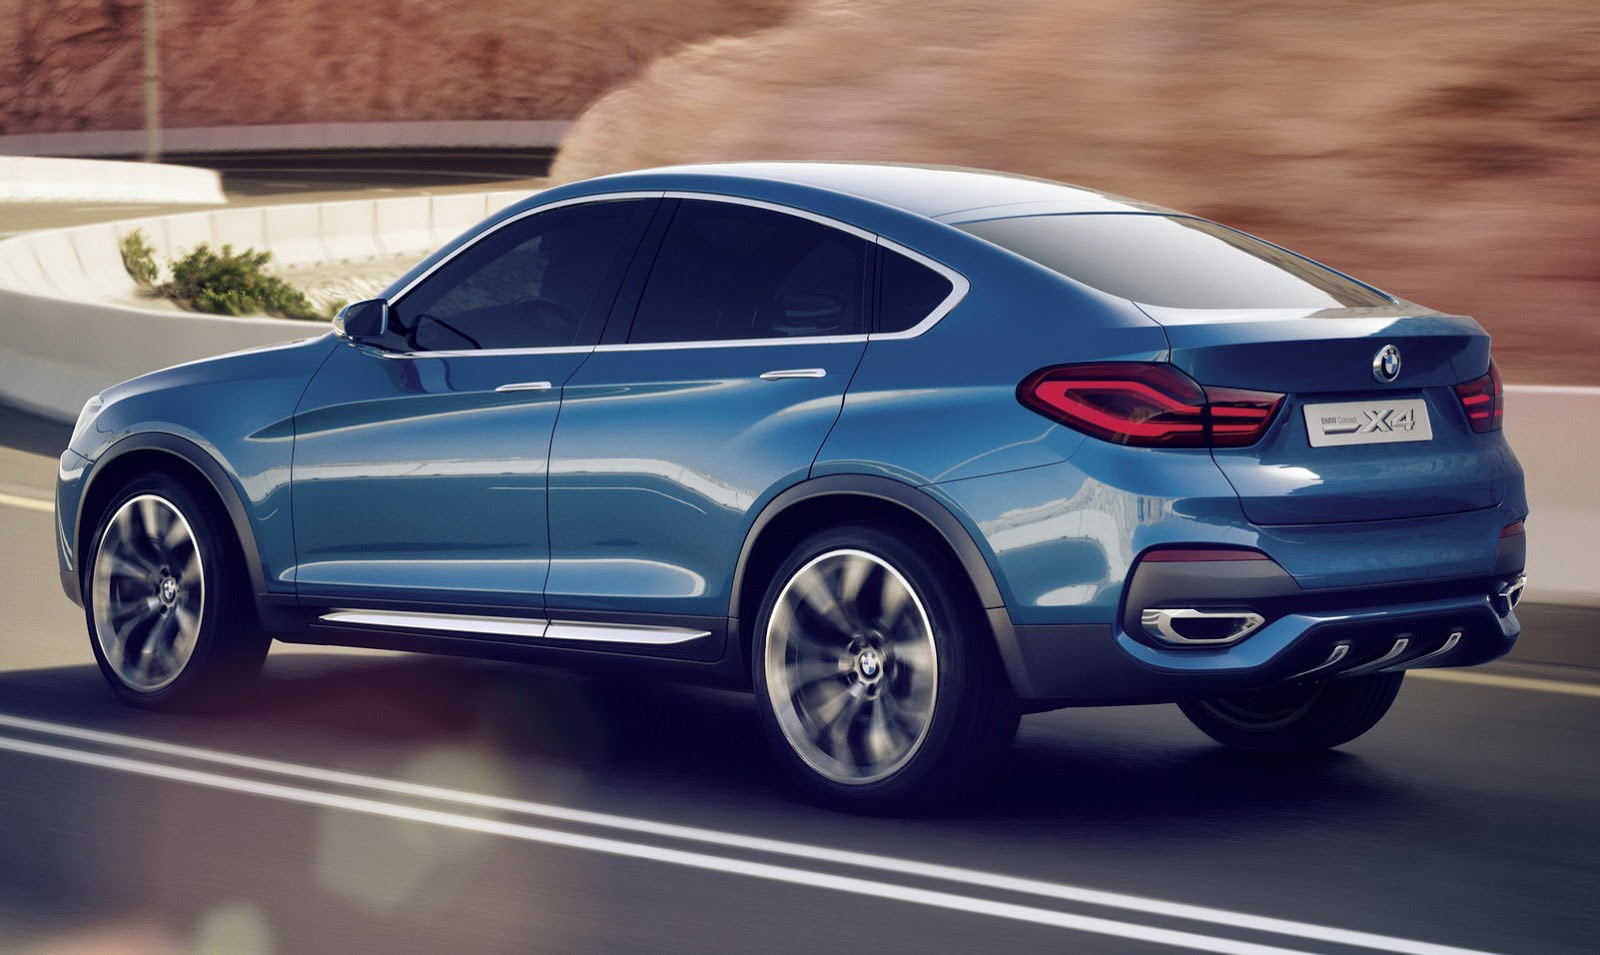 Bmw X4 Interesting News With The Best Bmw X4 Pictures On